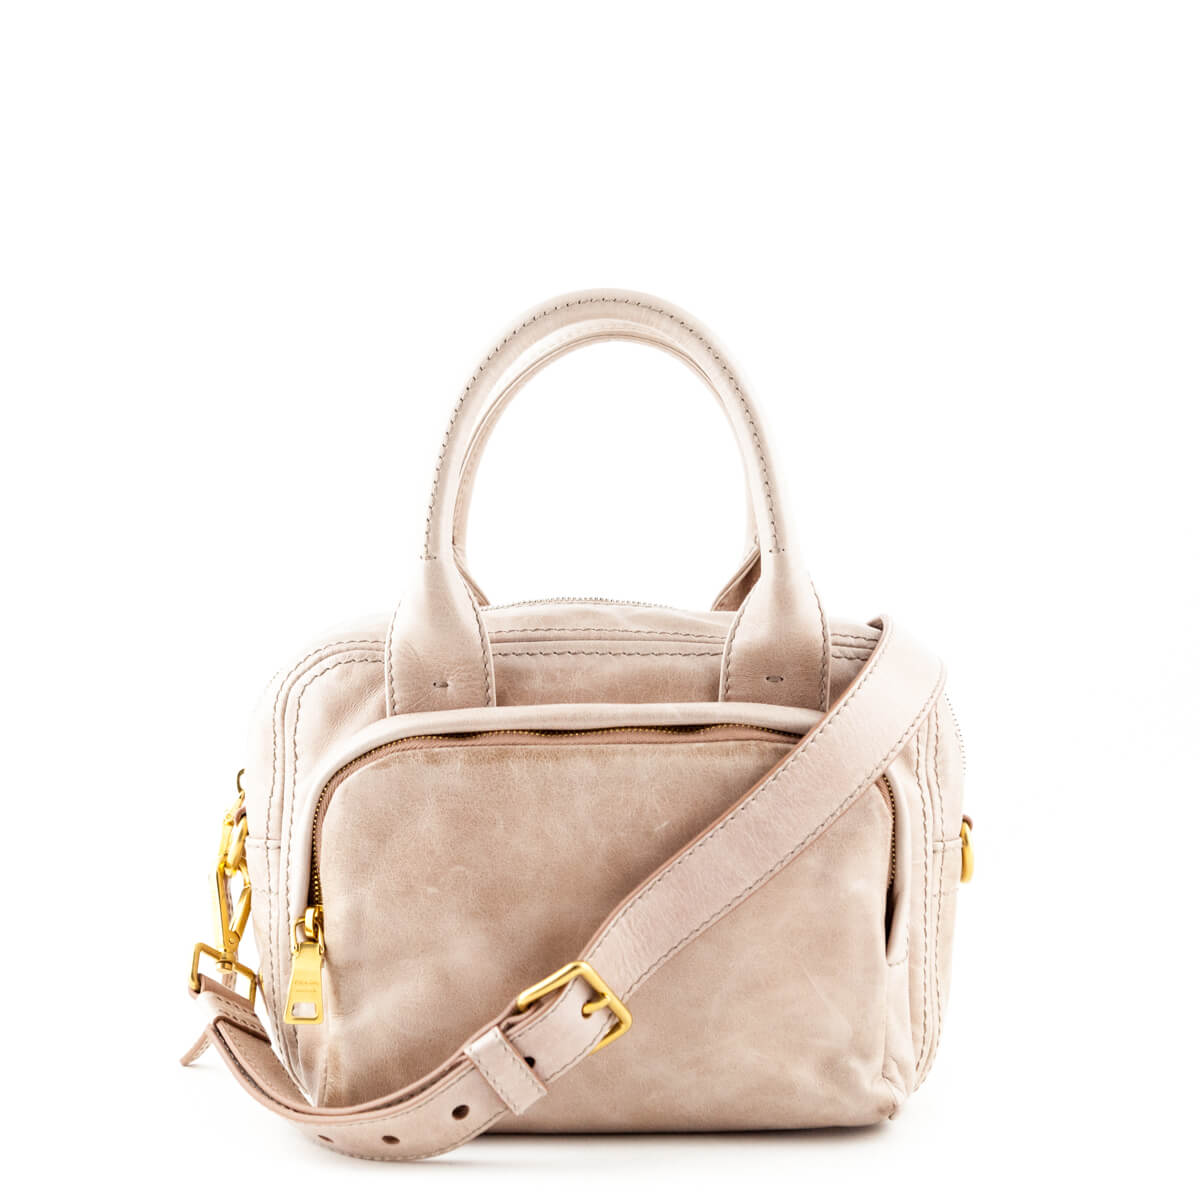 4969bcd8db Prada Blush Vitello Shine Satchel Bag - LOVE that BAG - Preowned Authentic Designer  Handbags ...